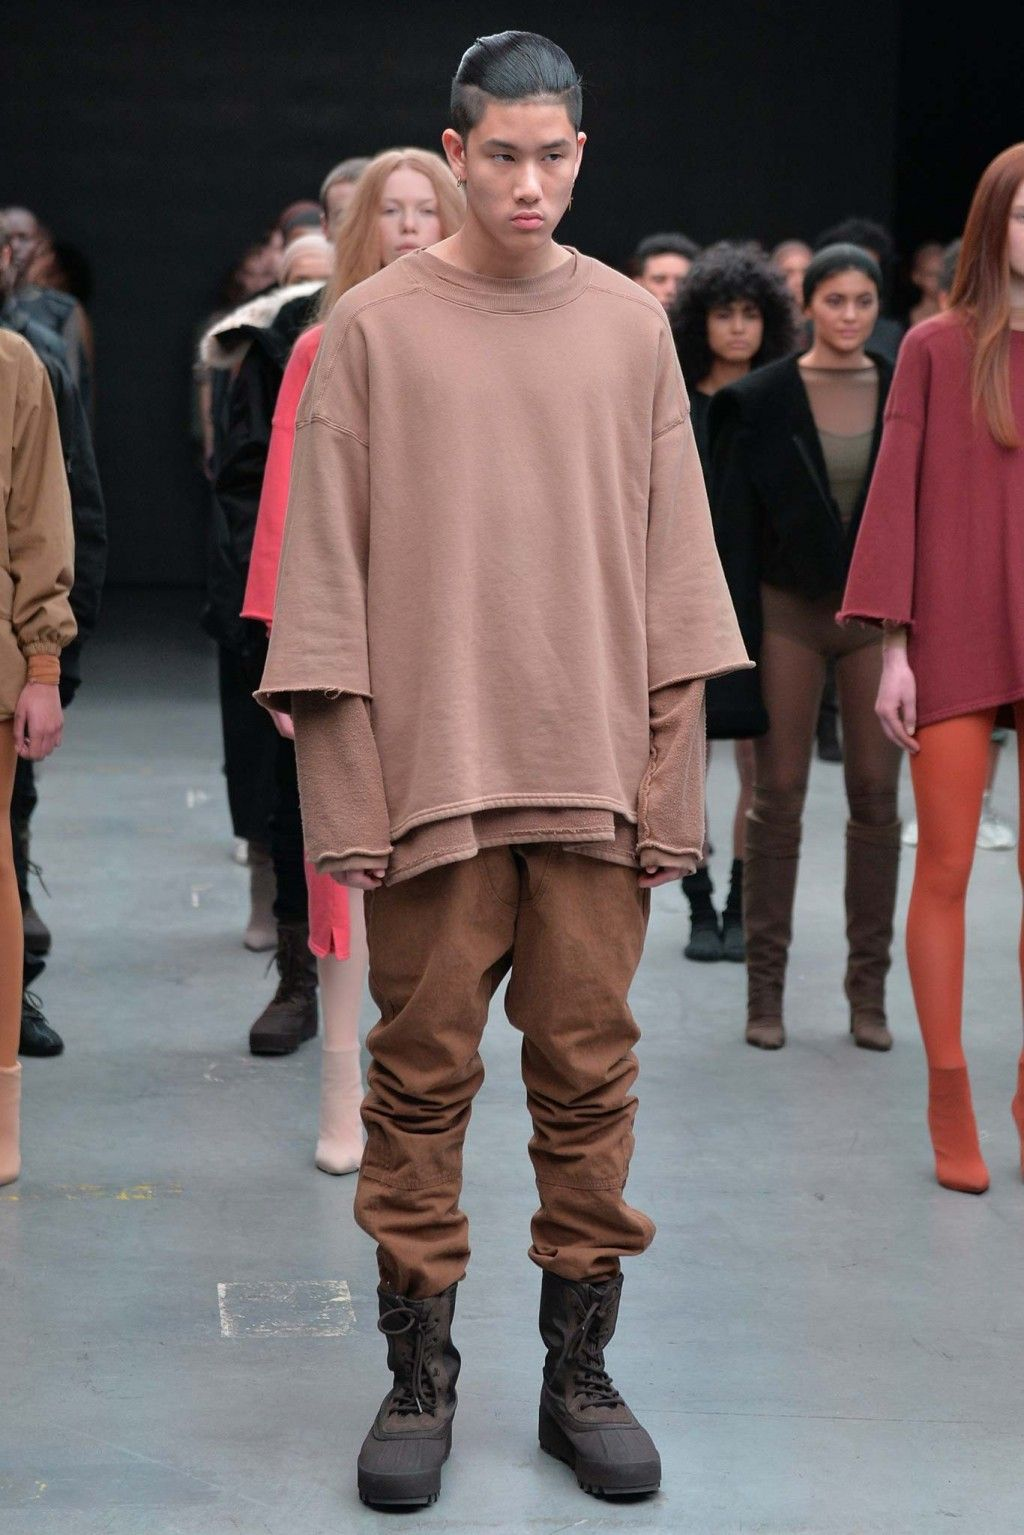 Kanye West Adidas Collaboration Yeezy Season 1 Collection Kanye West Style Yeezy Fashion Kanye West Adidas